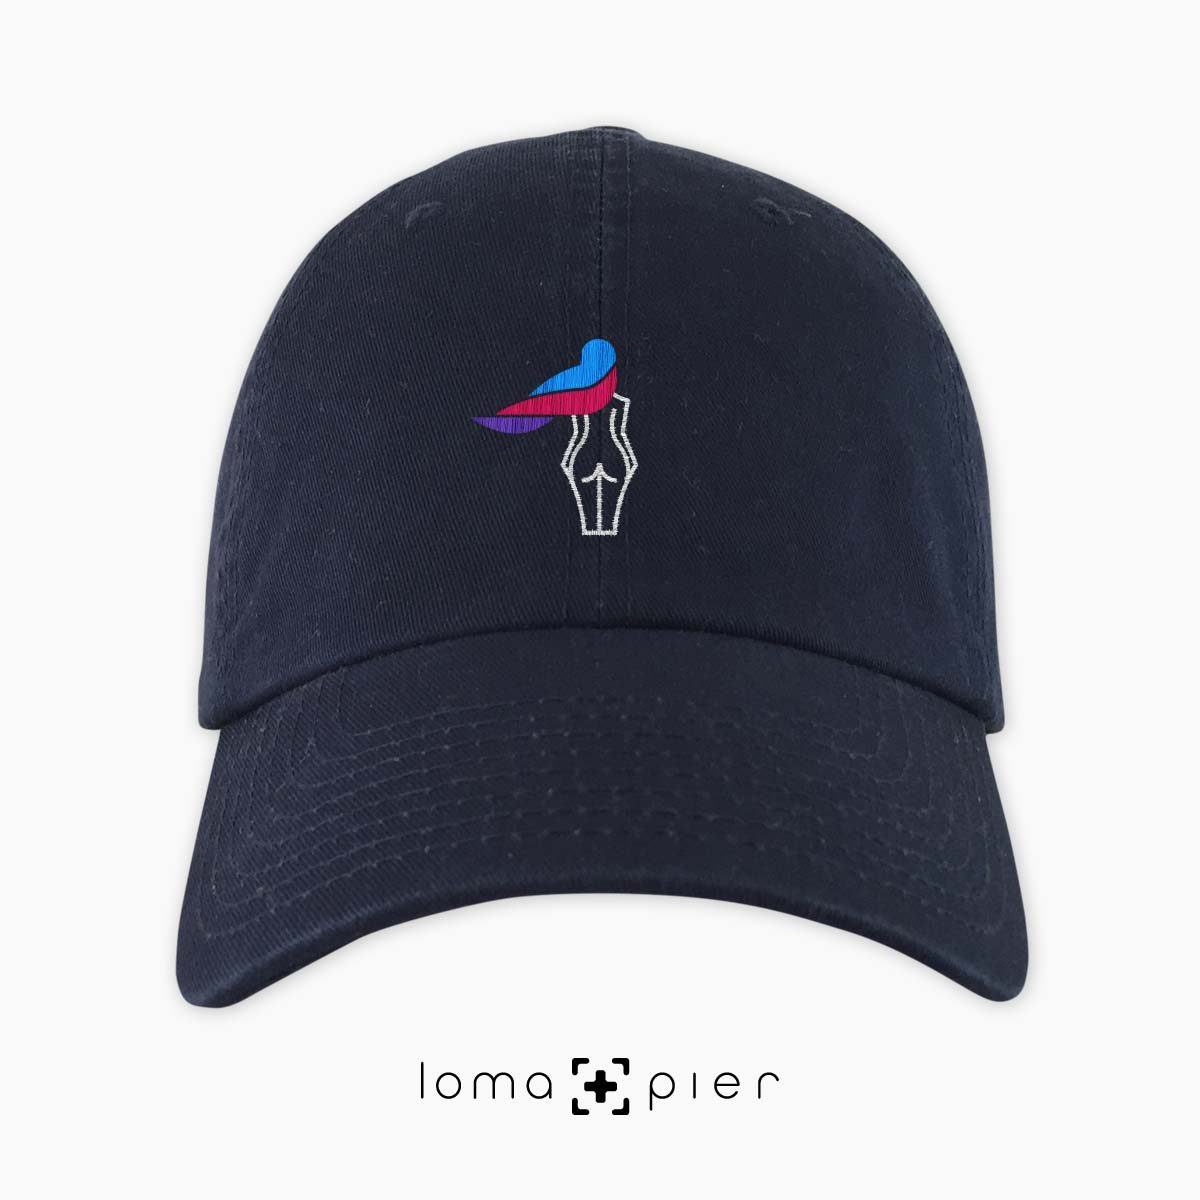 WAVY BEACH icon embroidered on a navy blue unstructured dad hat with multicolored thread by loma+pier hat store made in the USA